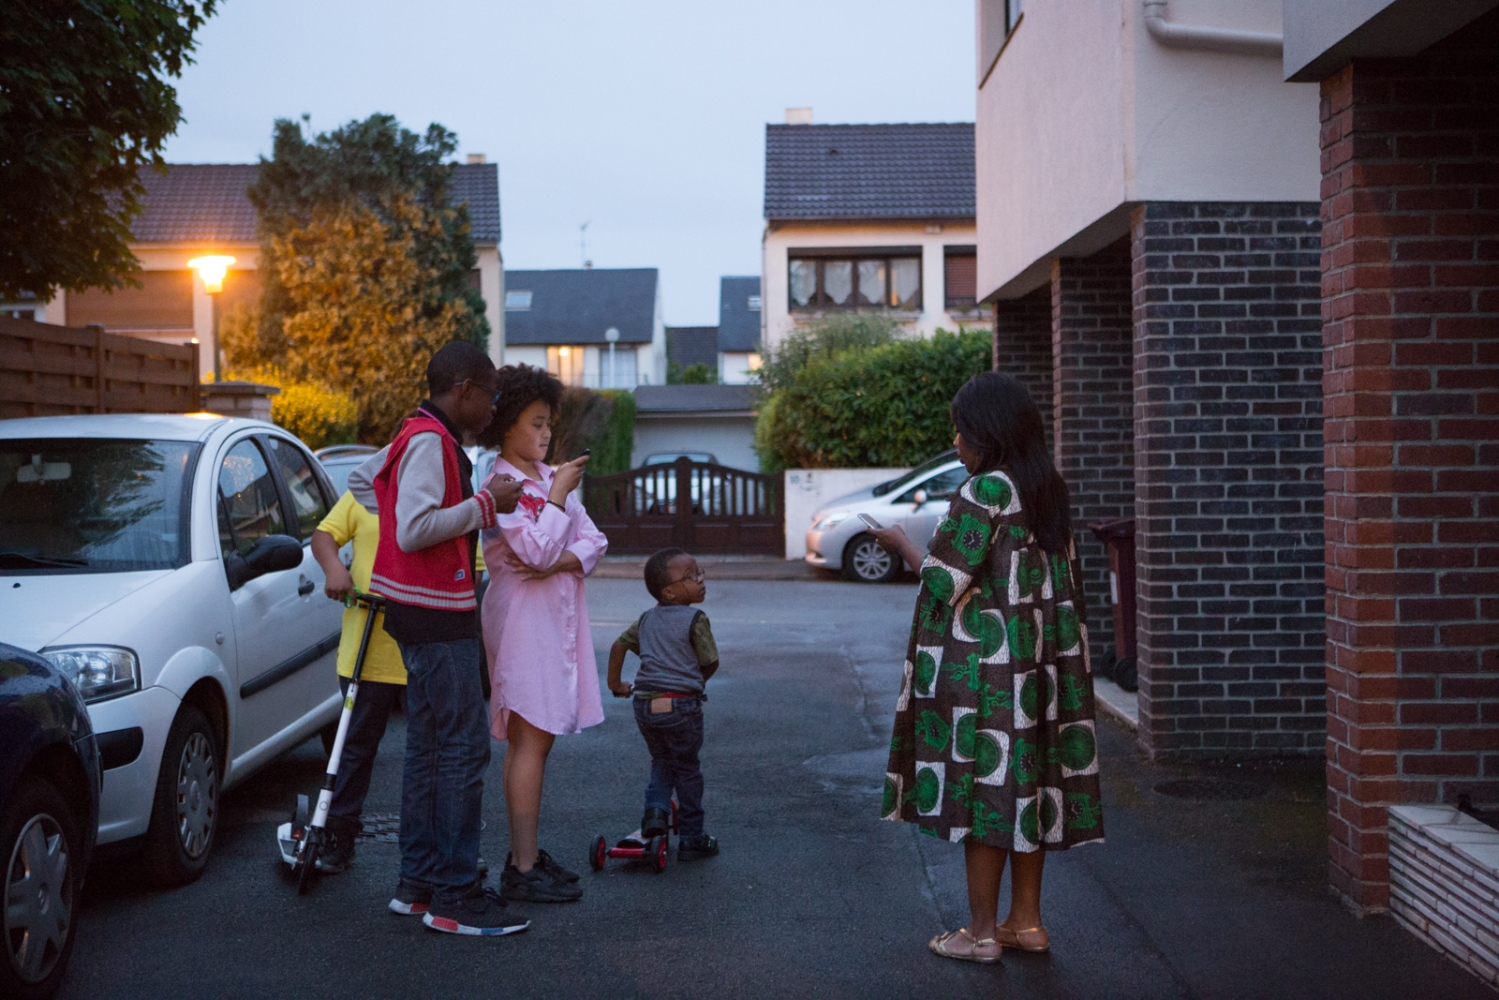 Corinne Kyoto Sy and kids in front of her house during the mourning of her father.Livry-Gargan, Ile de France, France